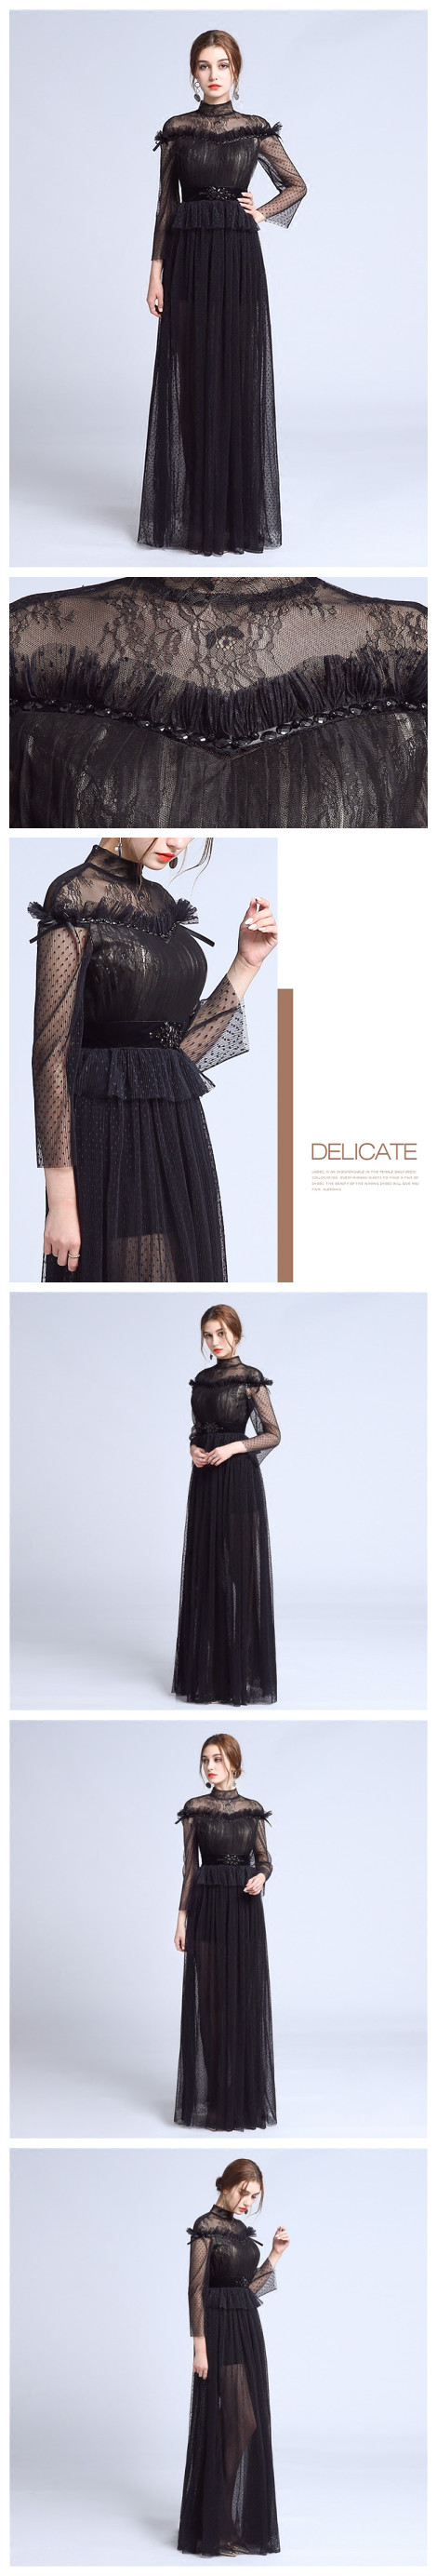 Chic sheathcolumn tulle high neck black lace long sleeve prom dress